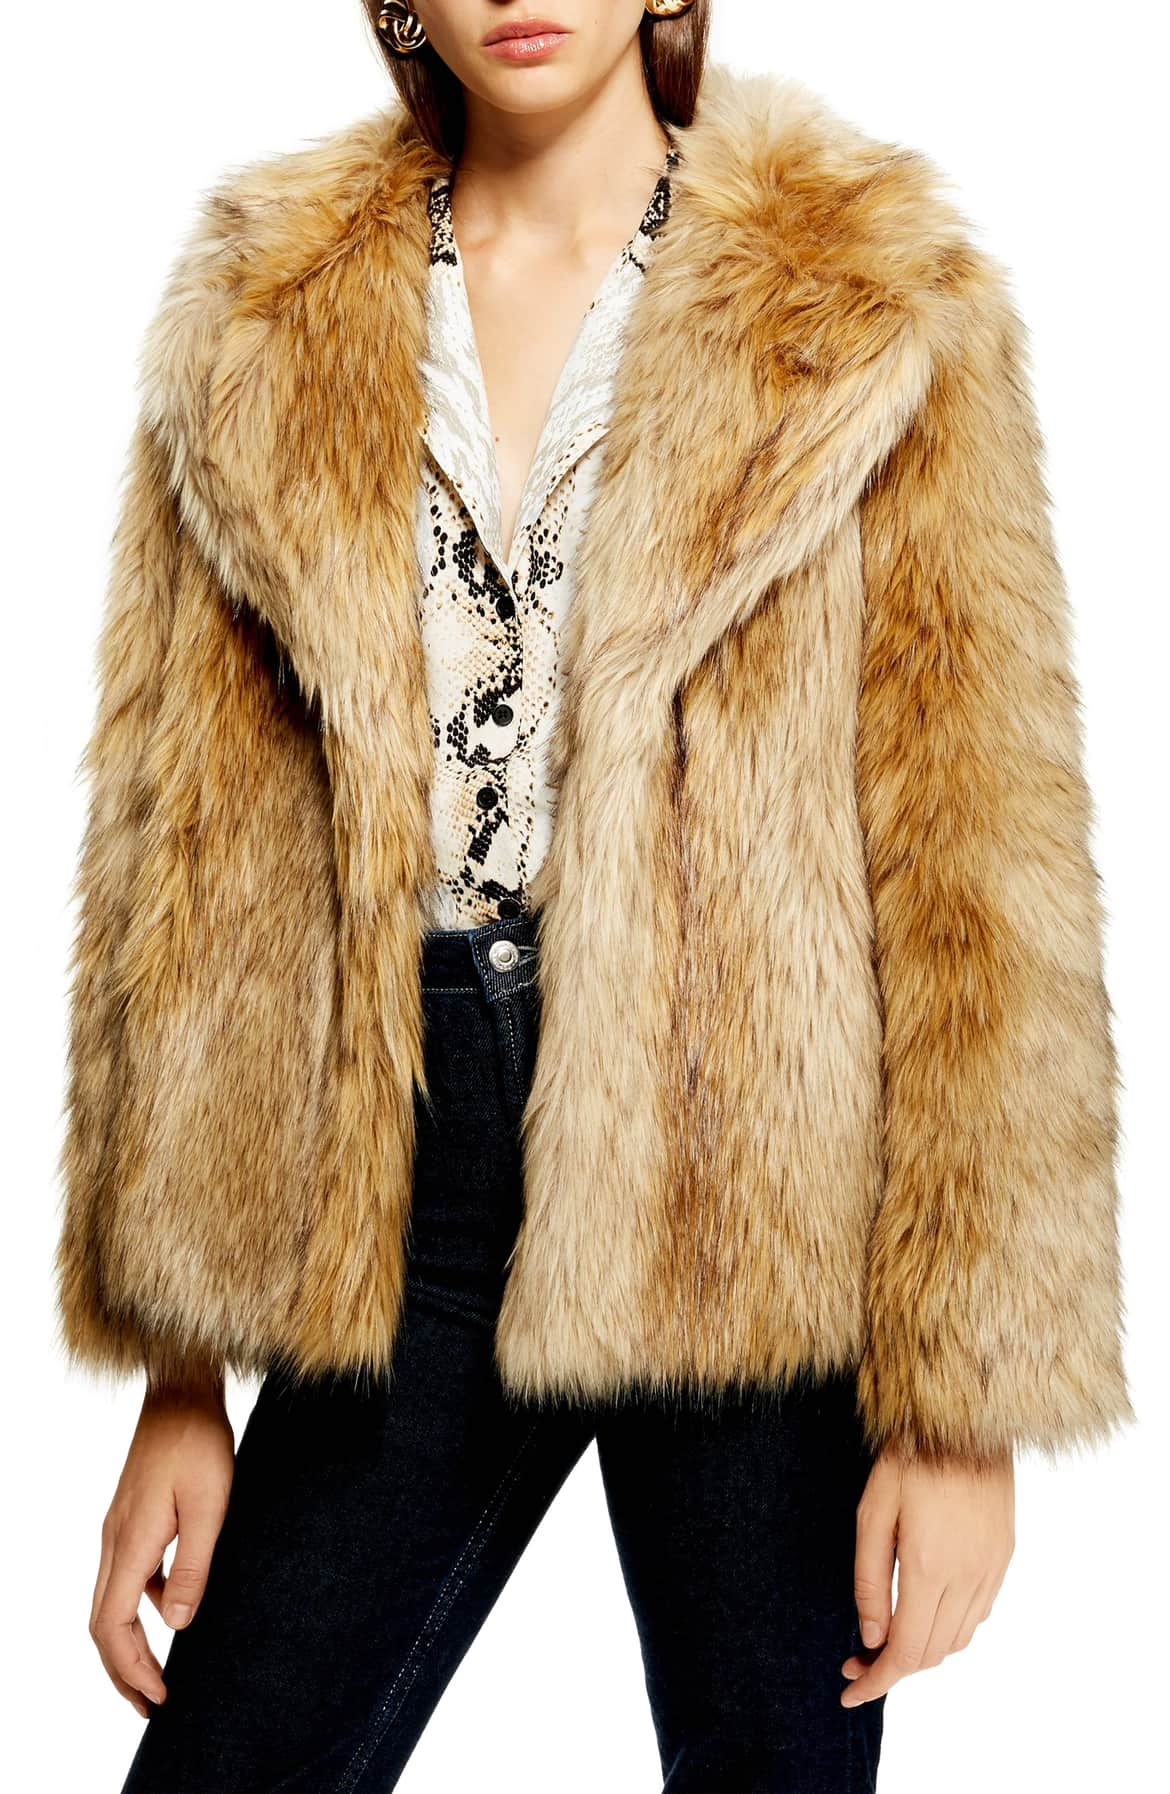 <p>Super shaggy faux fur adds statement texture to this hip-length jacket detailed with a face-framing collar. $150. (Image: Nordstrom){&amp;nbsp;}</p><p></p>